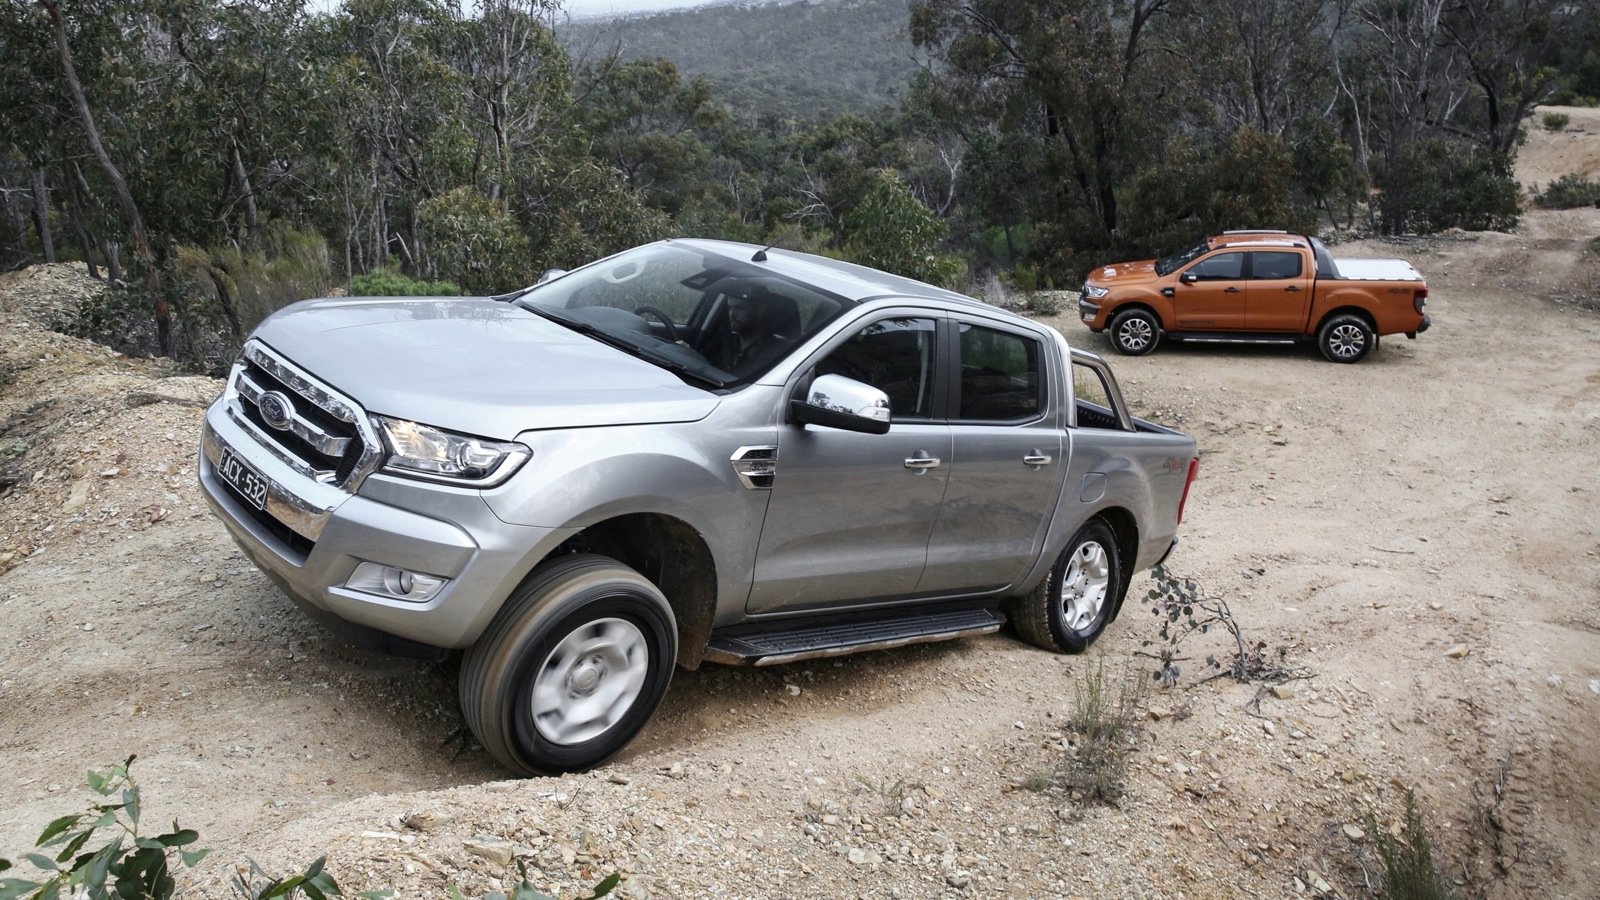 2016 ford ranger - photo #16